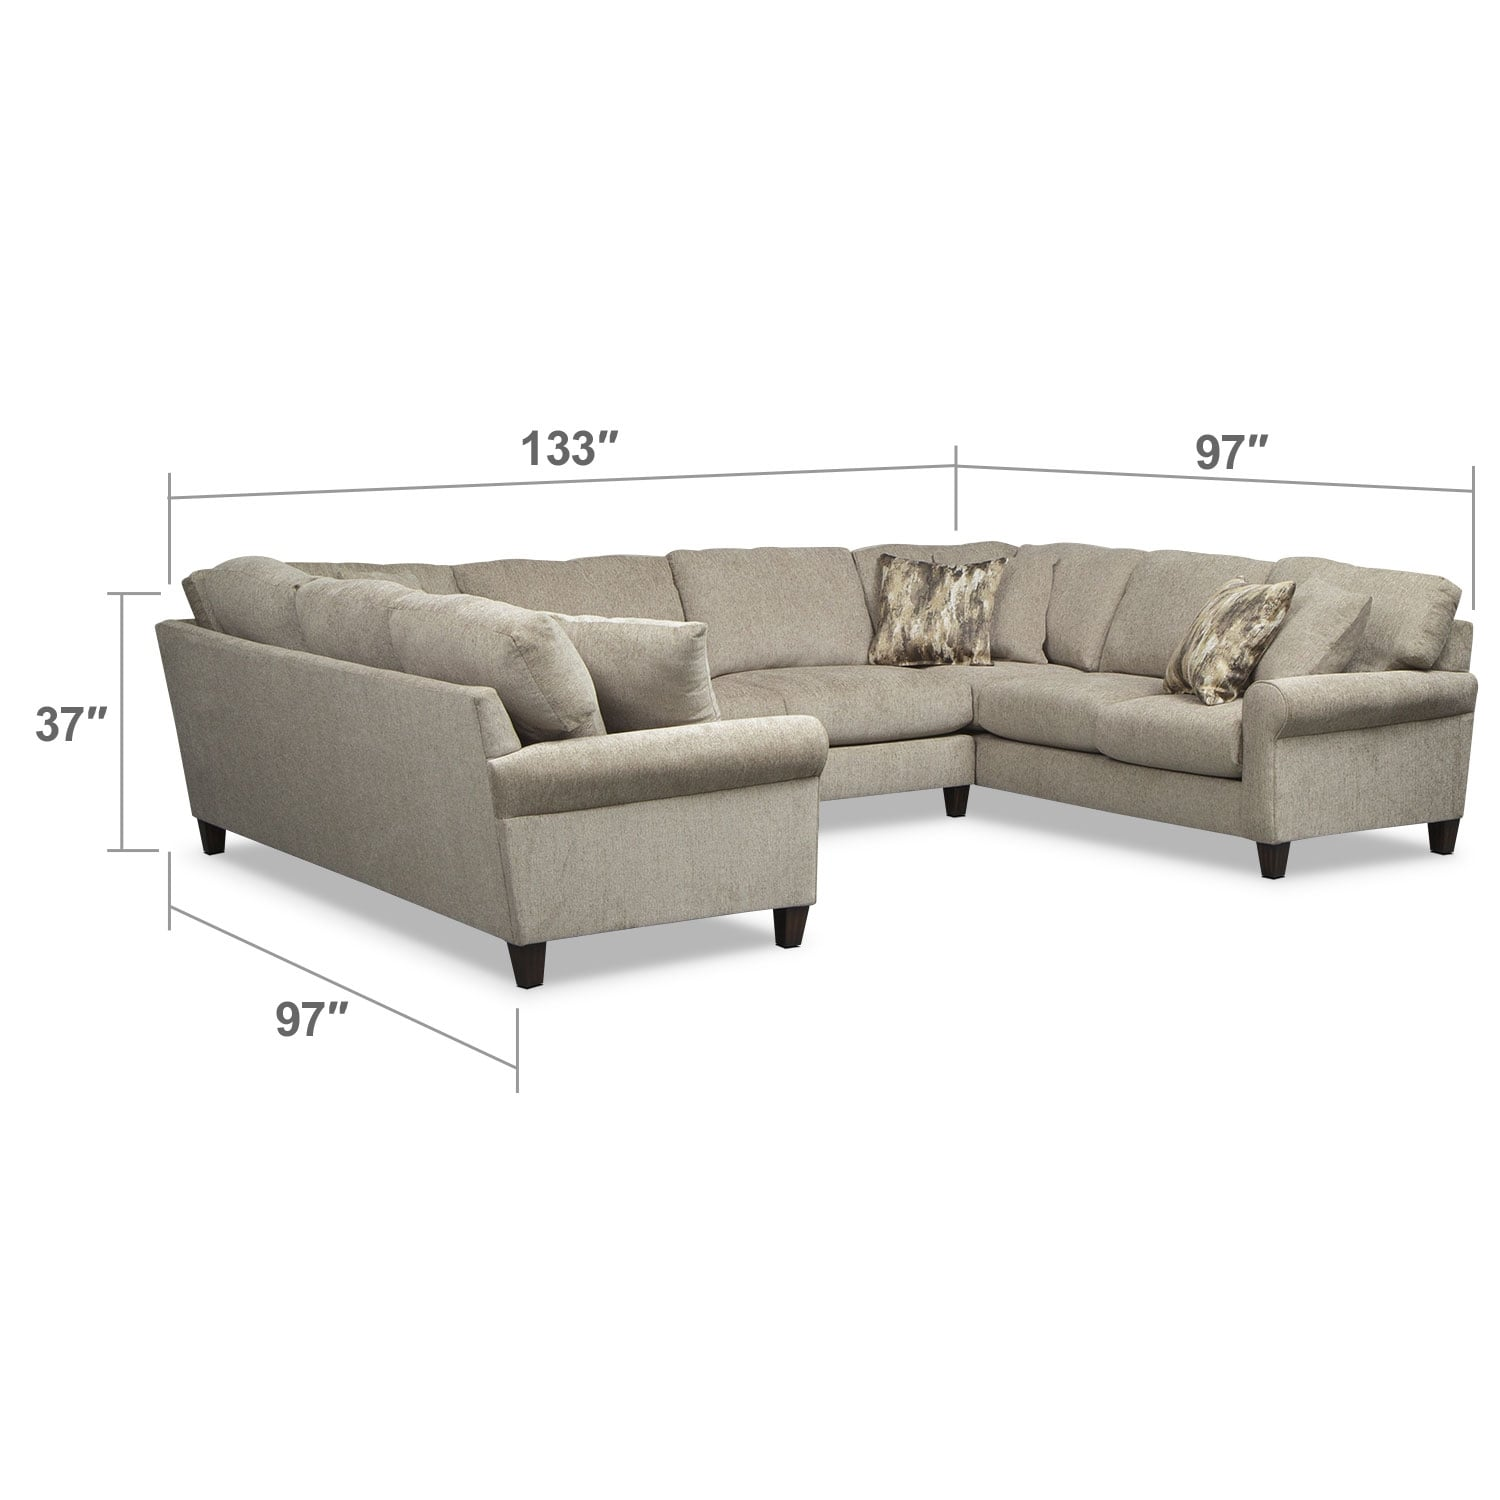 Living Room Furniture - Karma 3-Piece Sectional - Mink